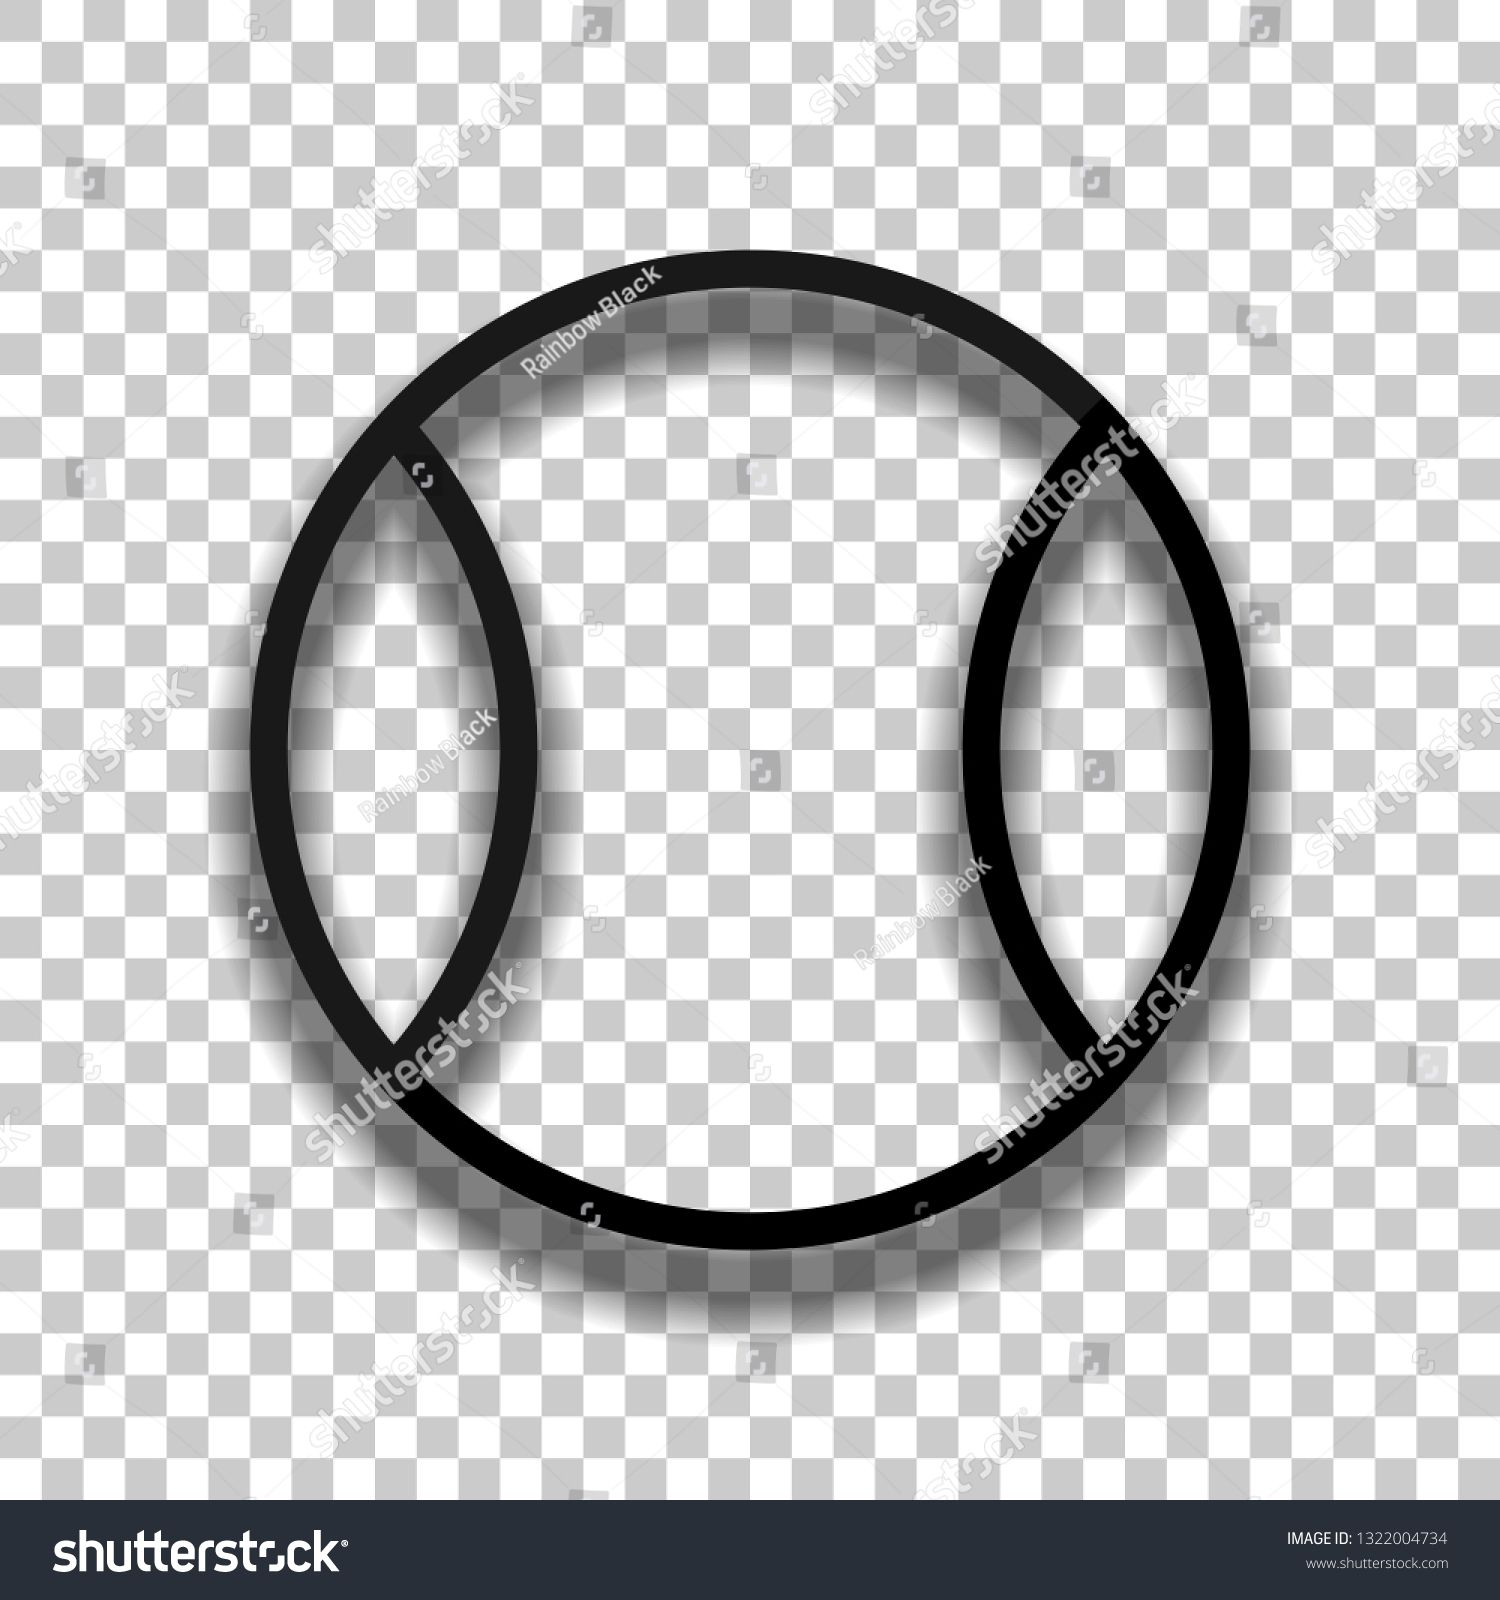 Tennis Ball Sport Game Outline Linear Icon Black Glass Icon With Soft Shadow On Transparent Background Ad Ad Game Sports Games Tennis Ball Black Glass